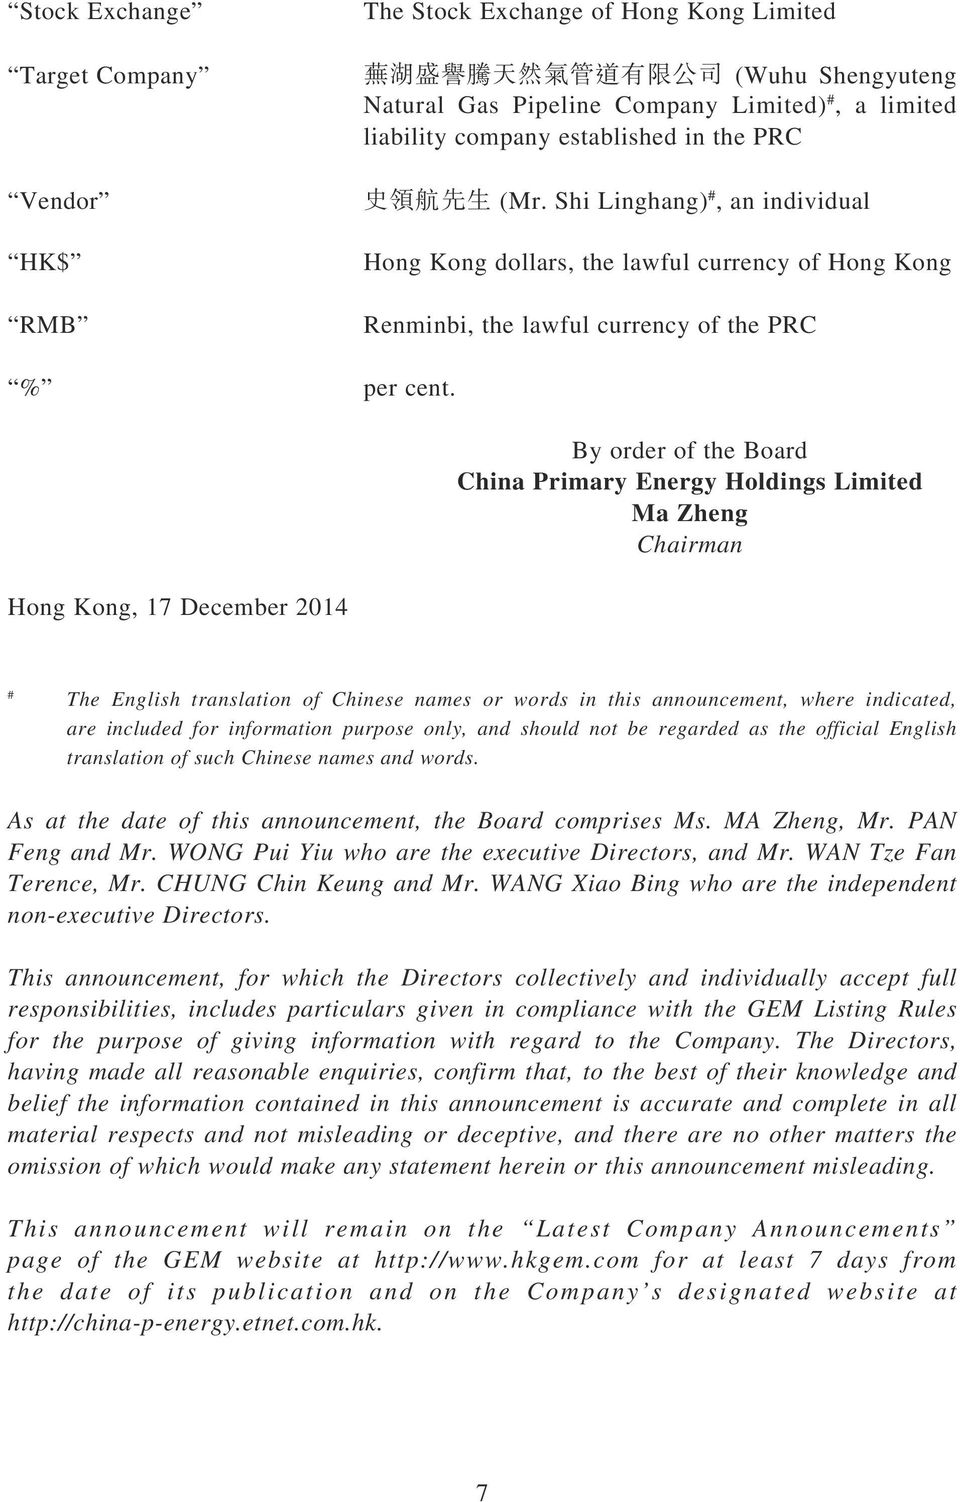 Hong Kong, 17 December 2014 By order of the Board China Primary Energy Holdings Limited Ma Zheng Chairman # The English translation of Chinese names or words in this announcement, where indicated,